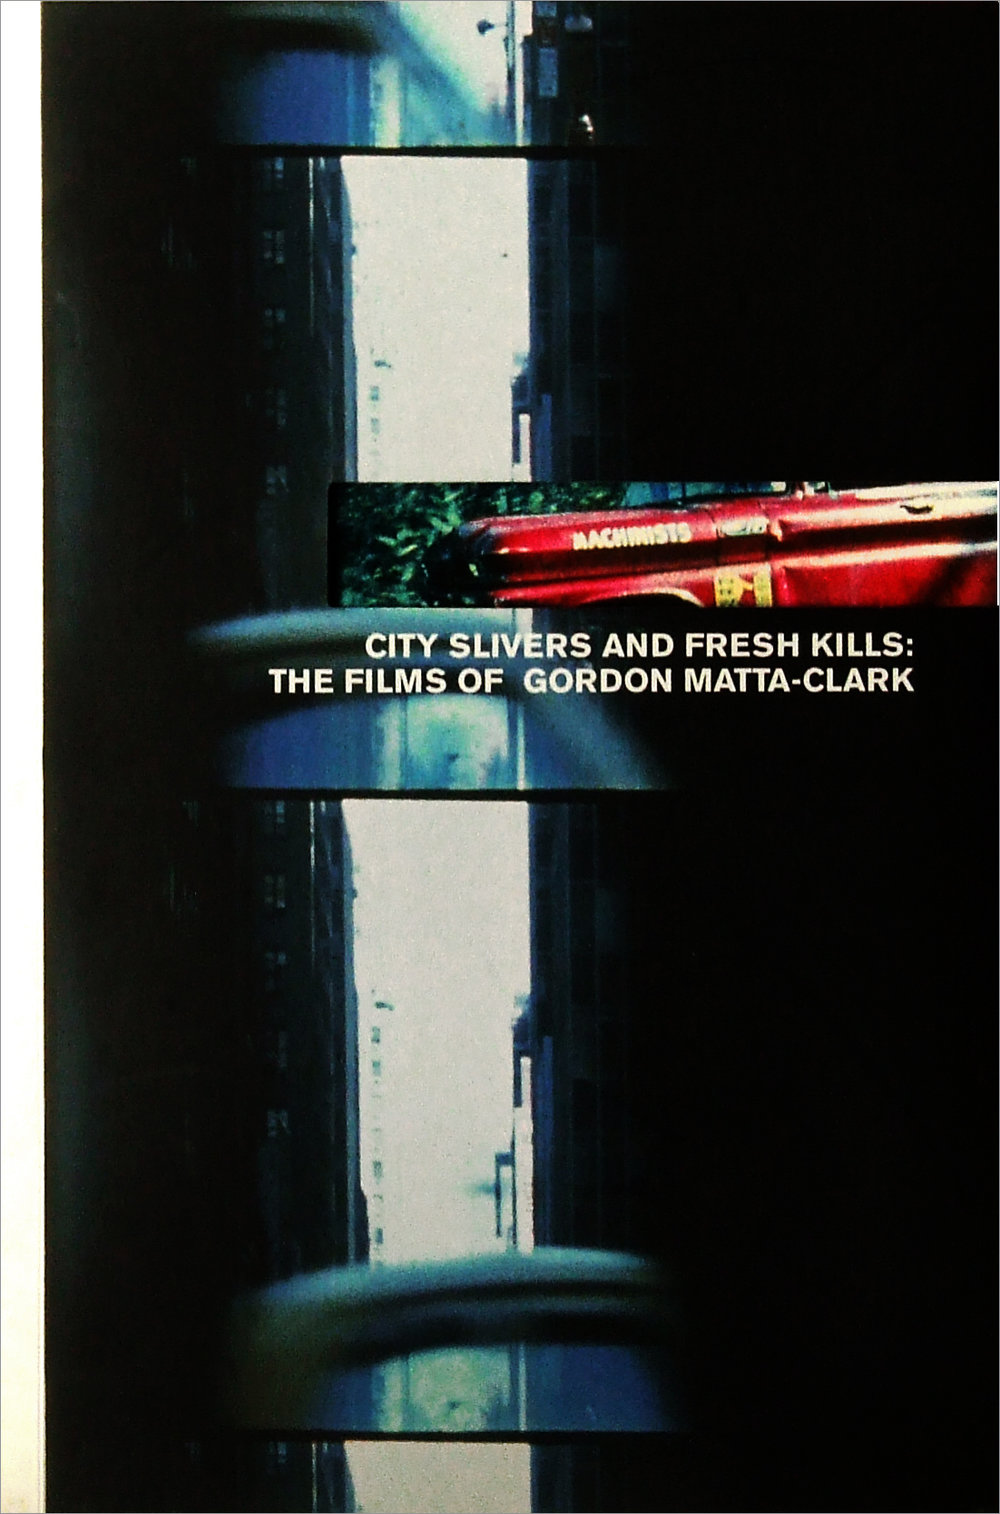 CITY SLICKERS AND FRESH KILLS: THE FILMS OF GORDON MATTA-CLARK